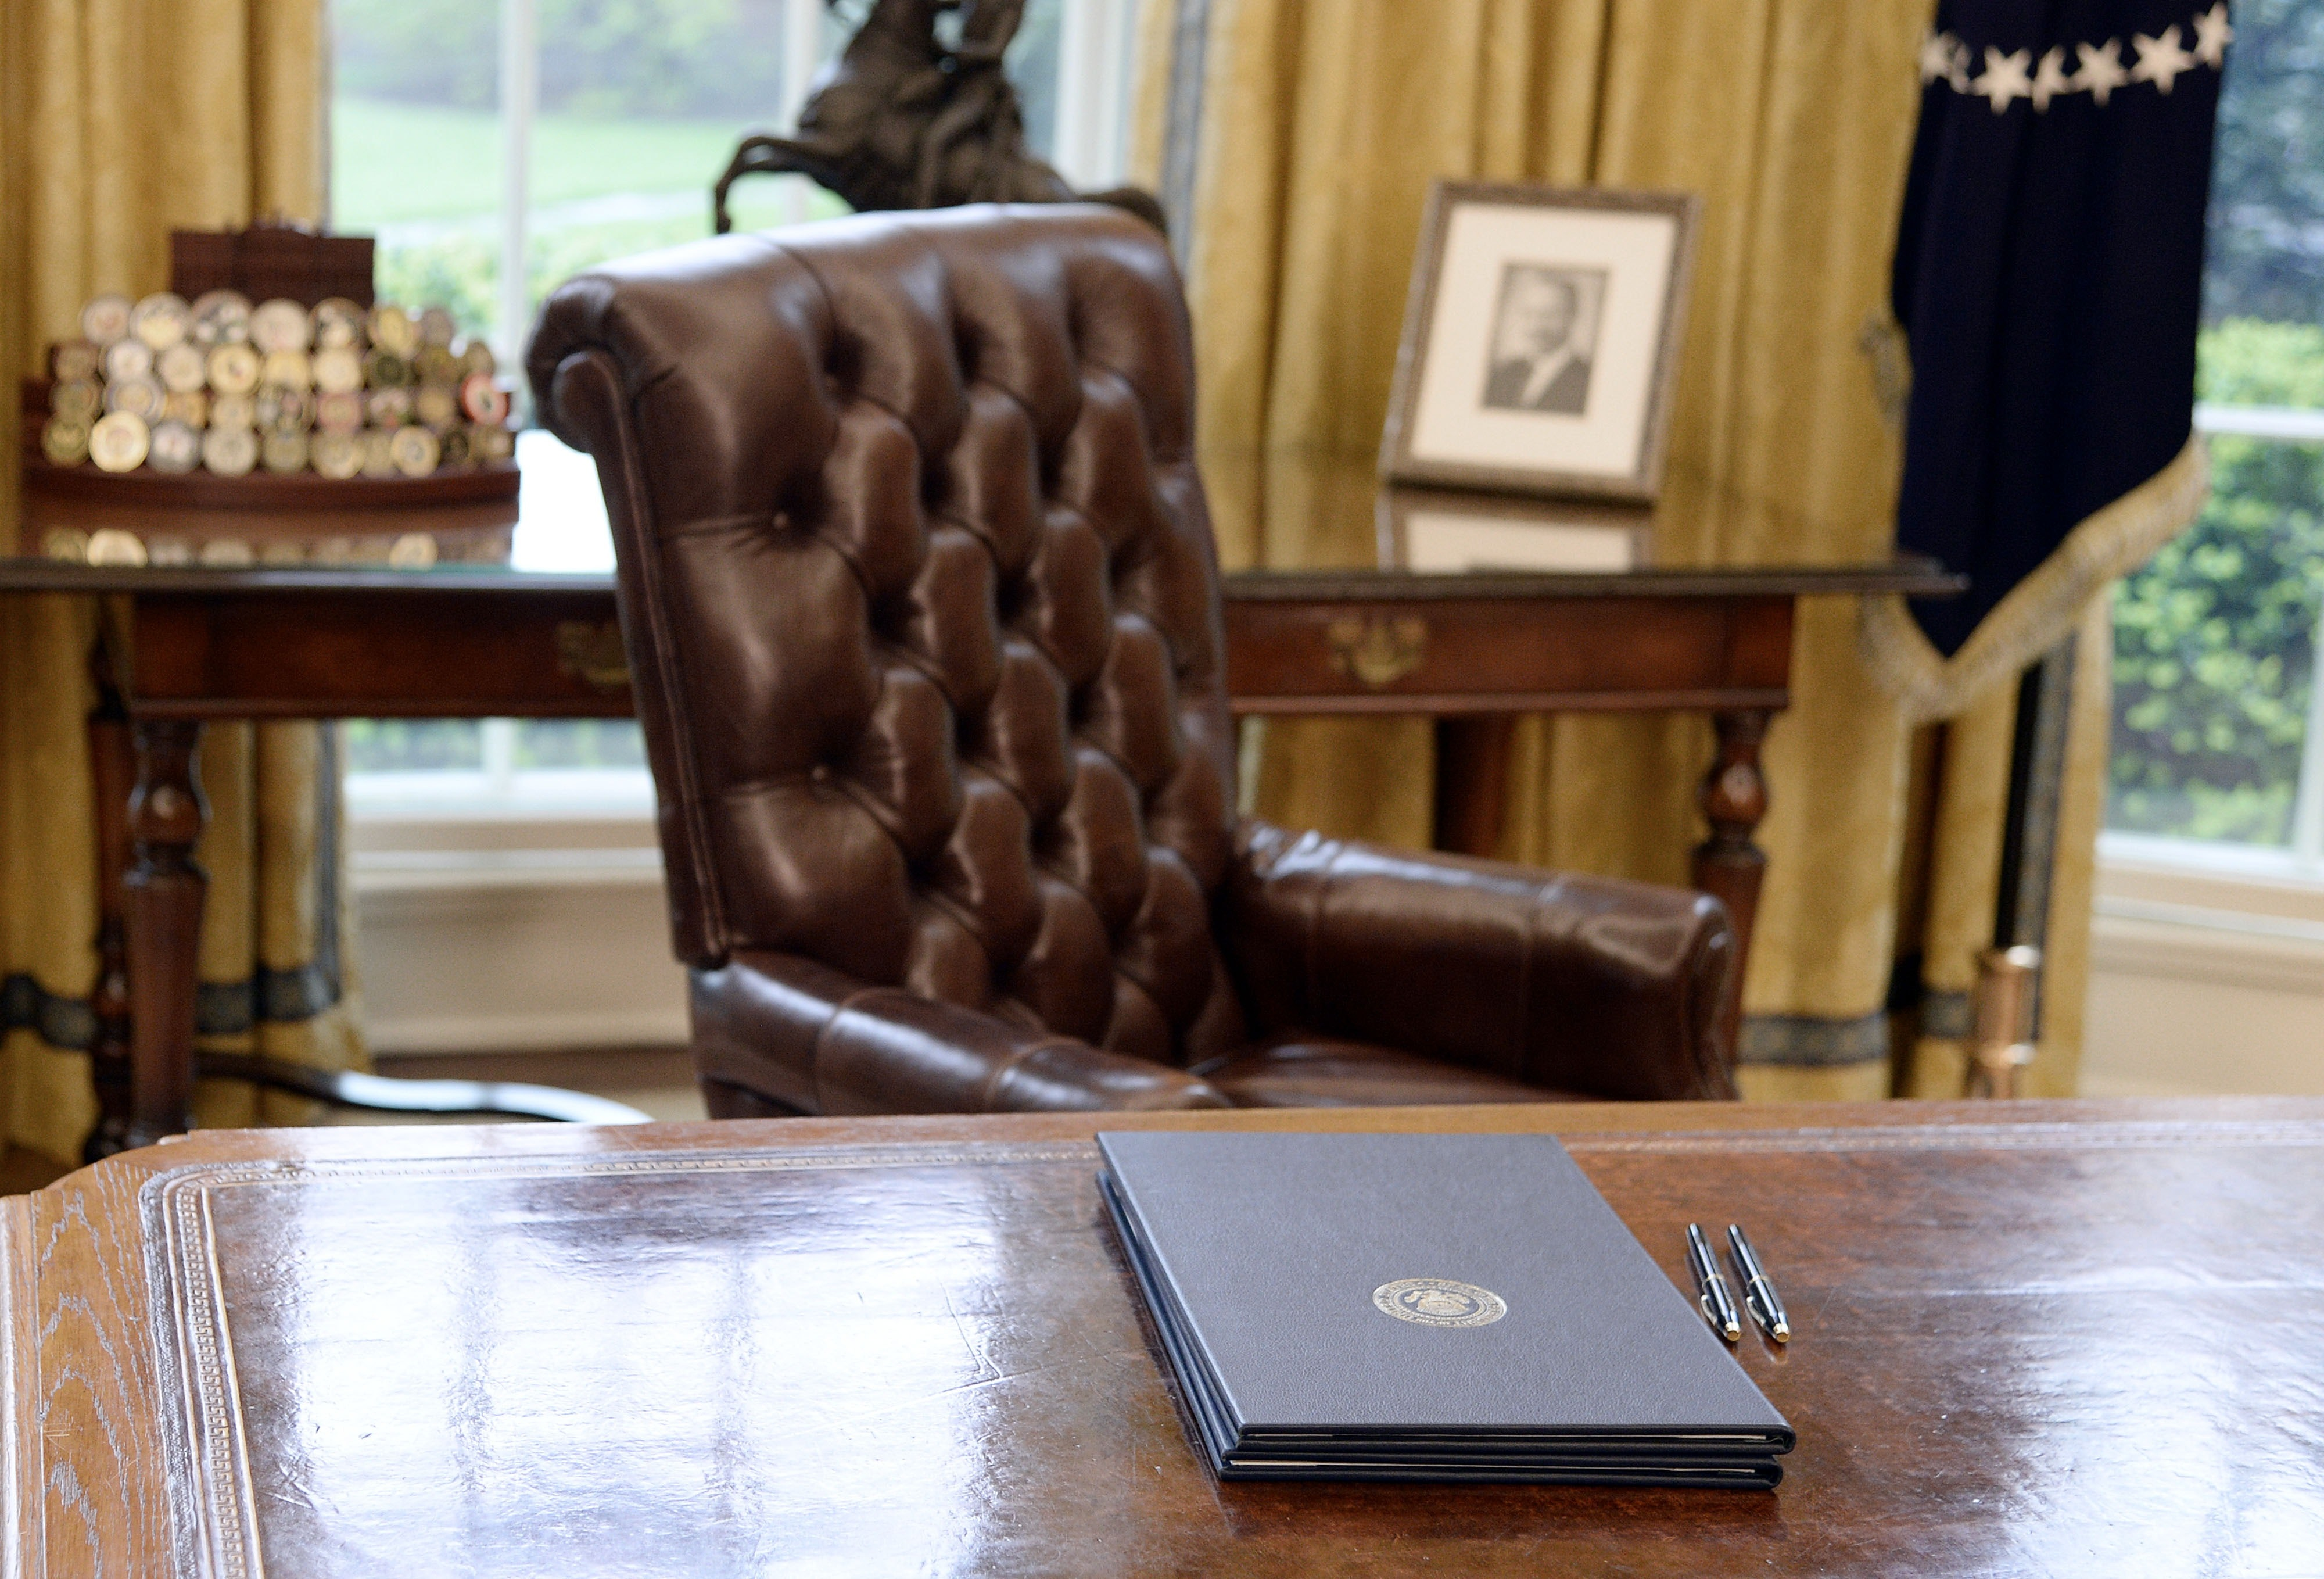 Marvelous Trumpu0027s White House Furniture Is Costing Taxpayers An Arm U0026 A Leg